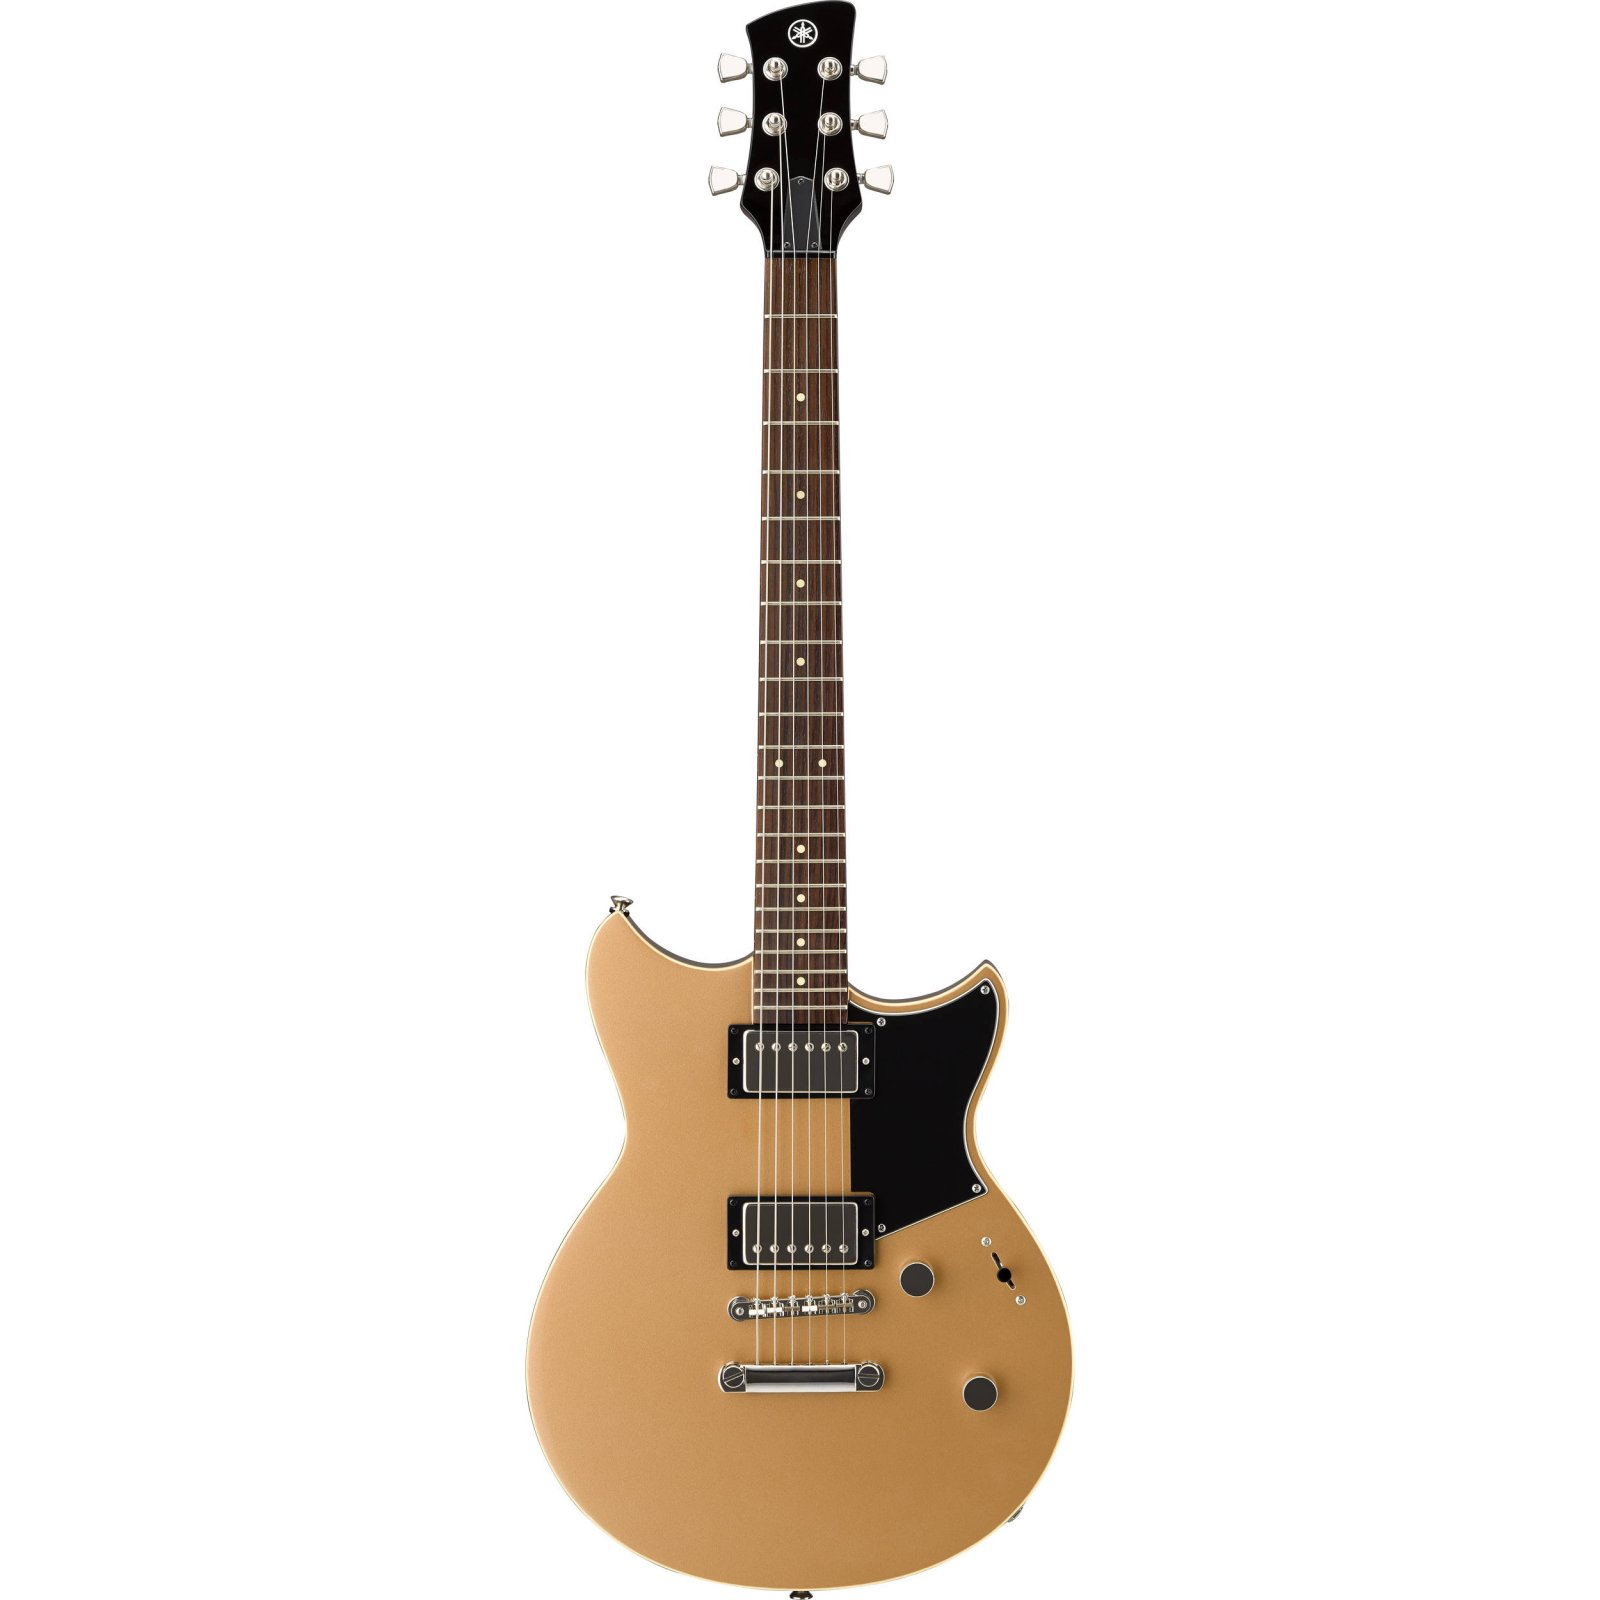 Yamaha RS420 Revstar Electric Guitar - Maya Gold